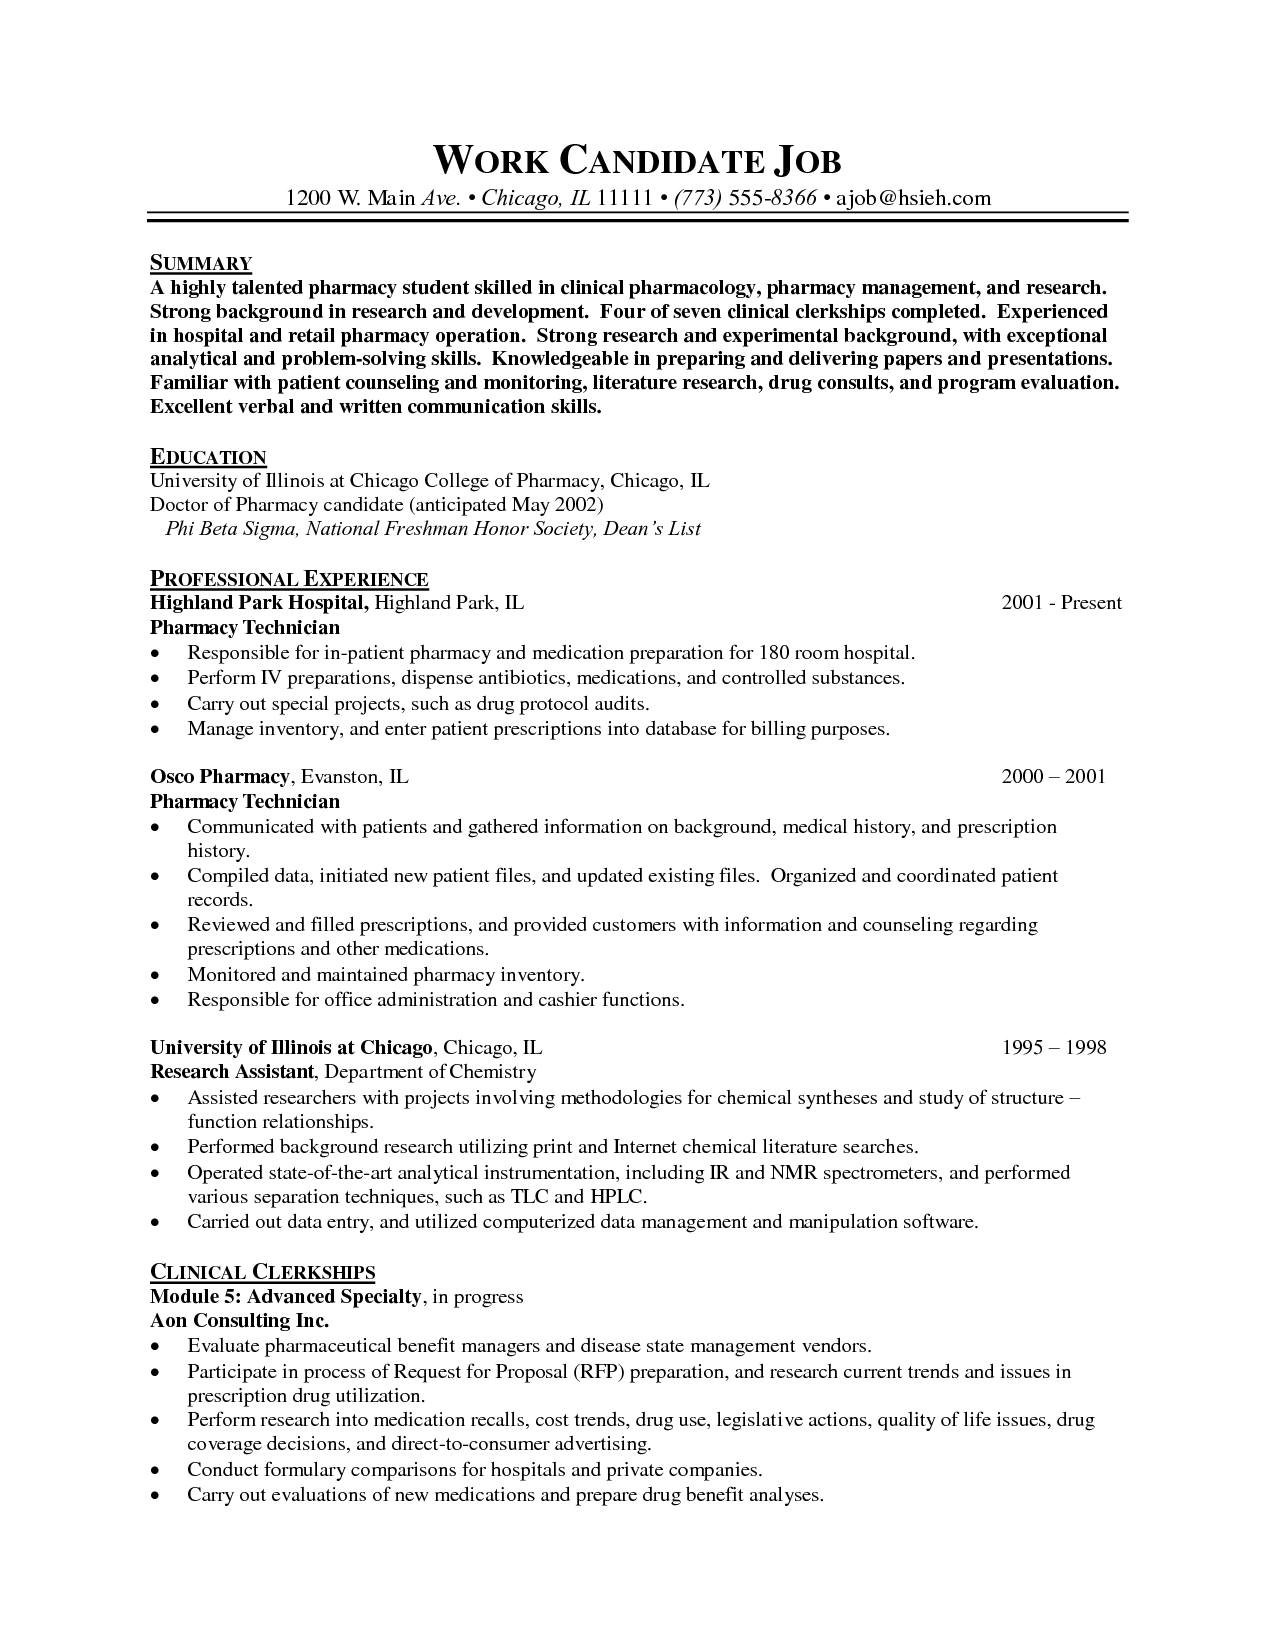 Example Resume Professional Resume Cover Letter Sample  Get Instant Risk Free